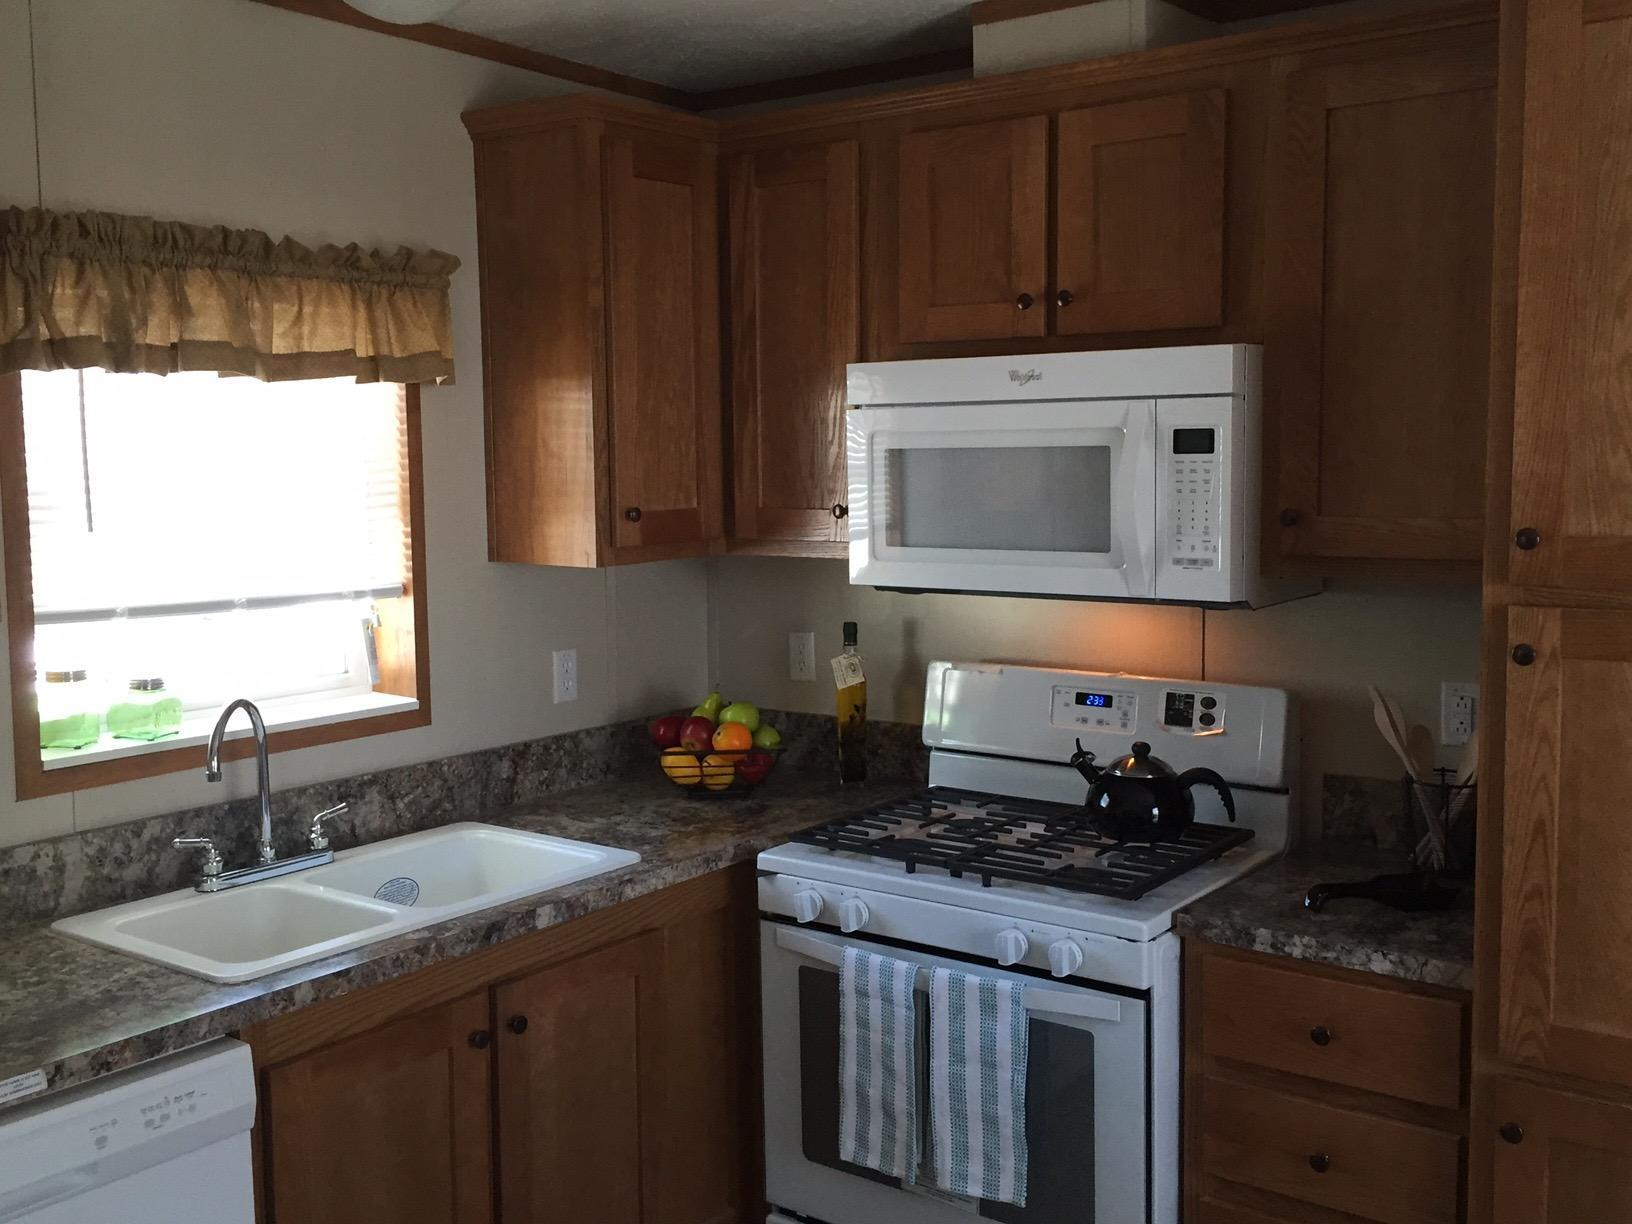 722 Pineview Ave For Rent - Egg Harbor Township, NJ | Trulia